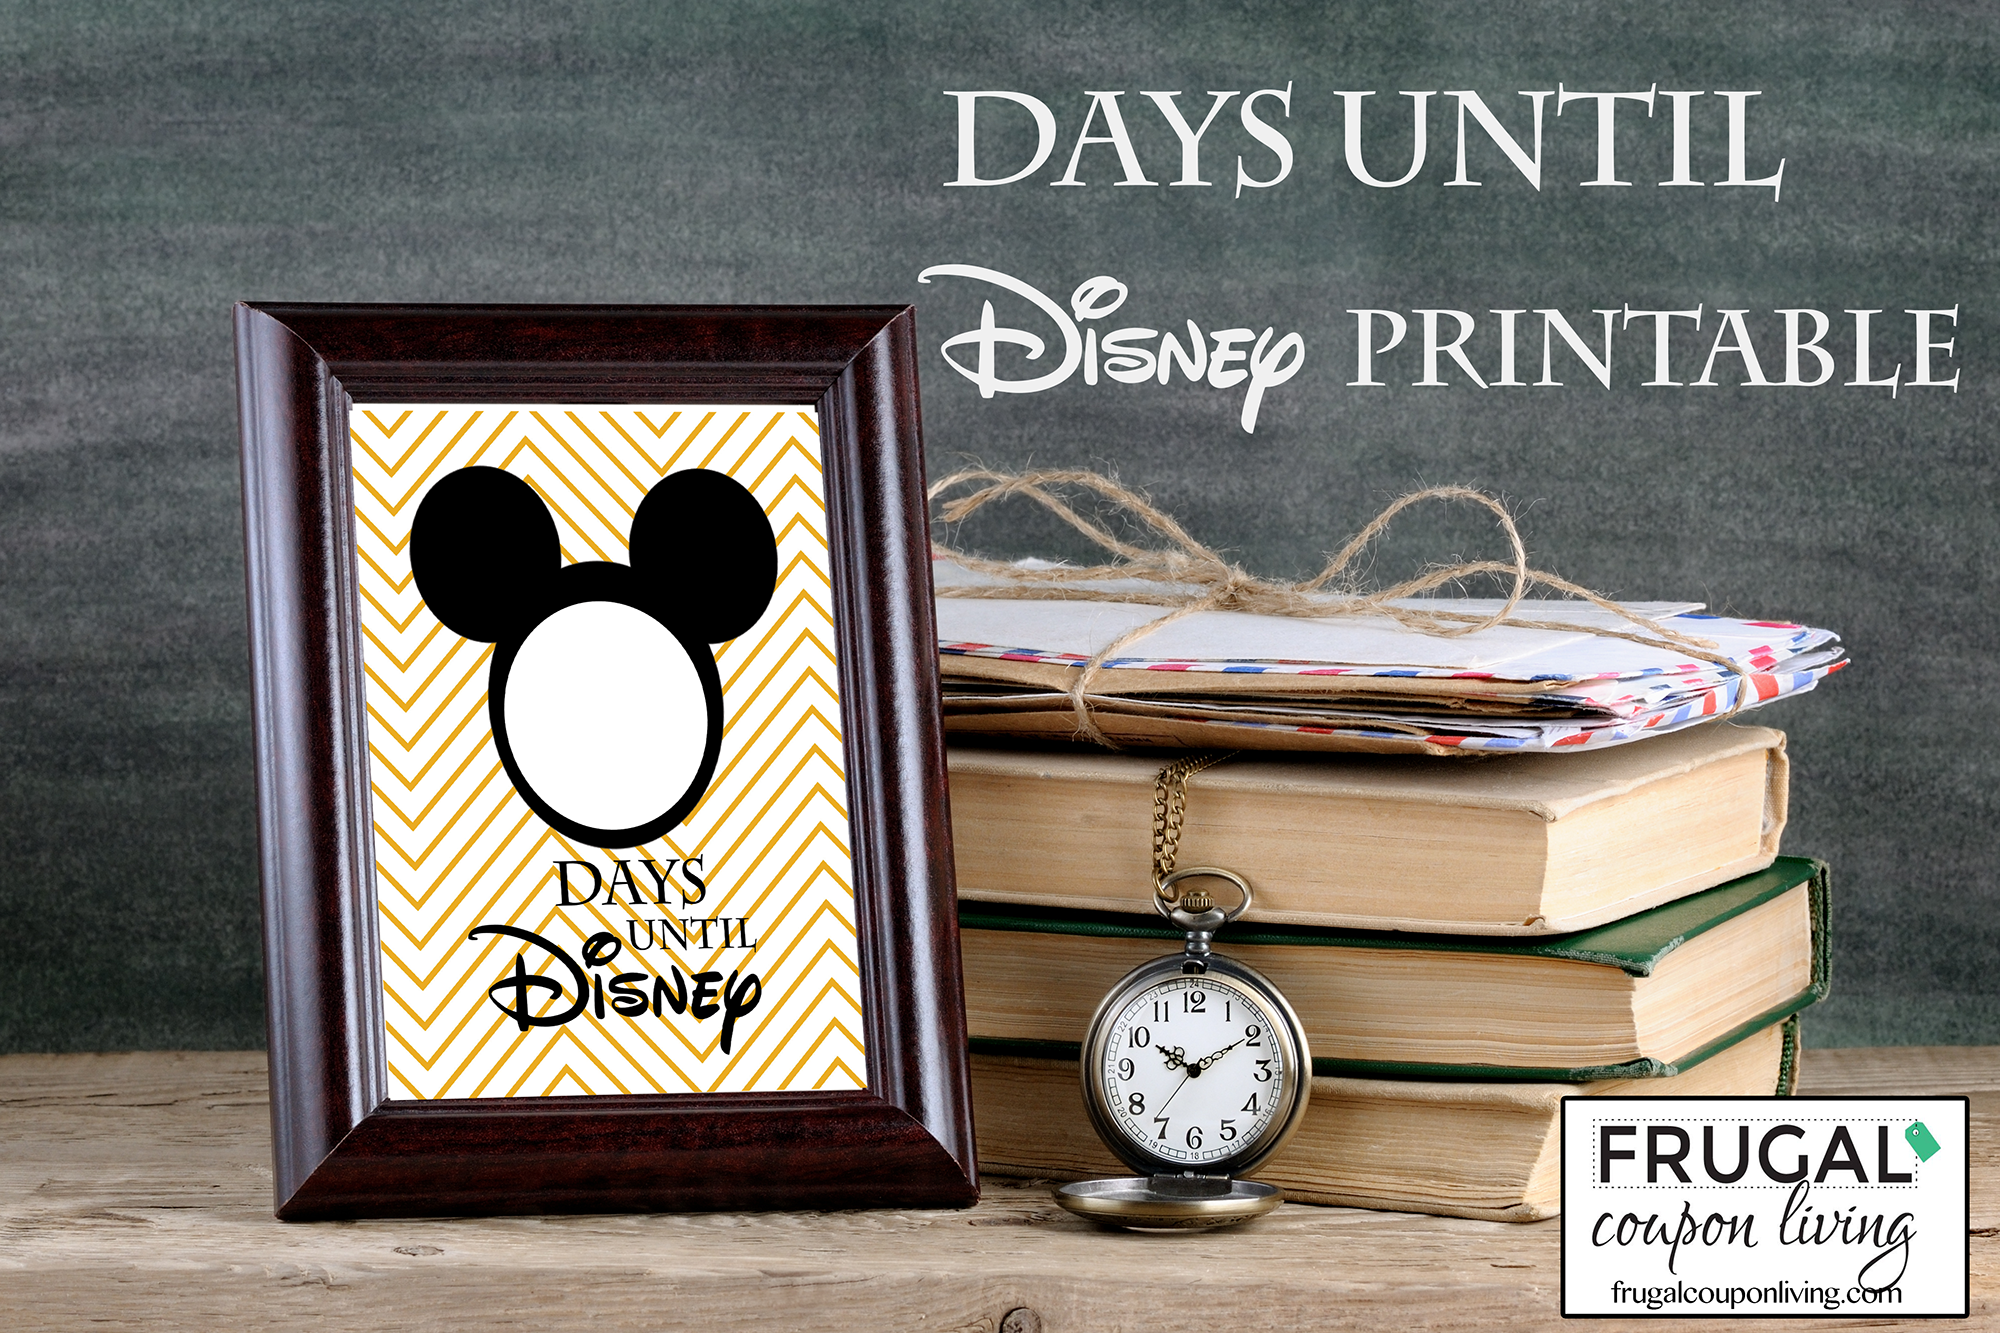 photo regarding Disneyland Printable Coupons named Totally free Countdown in direction of Disney Printable